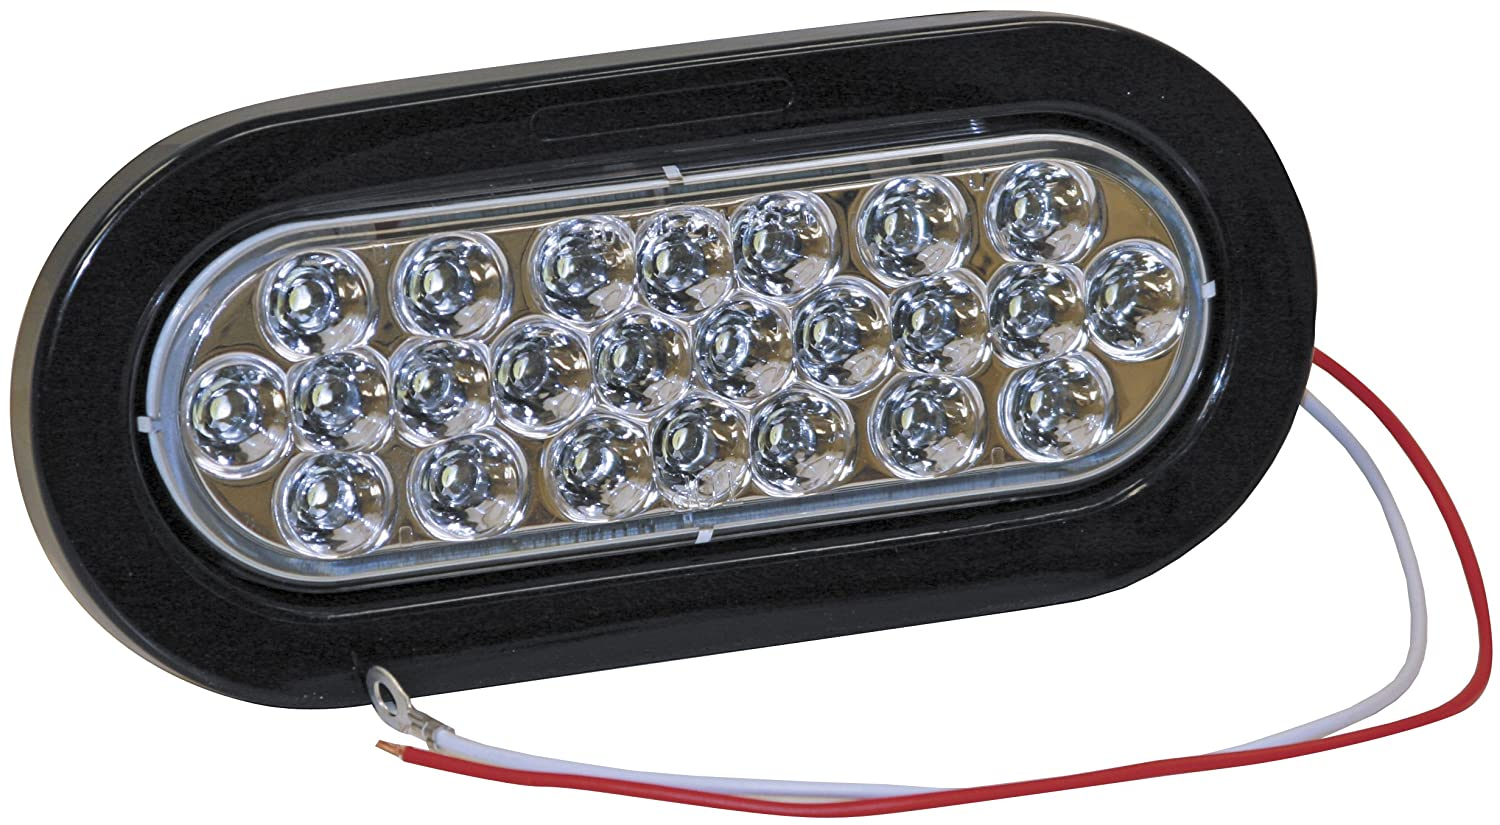 Oval Clear Buyers Products 5626324 Backup Light Kit w// 24 LEDs 6 In